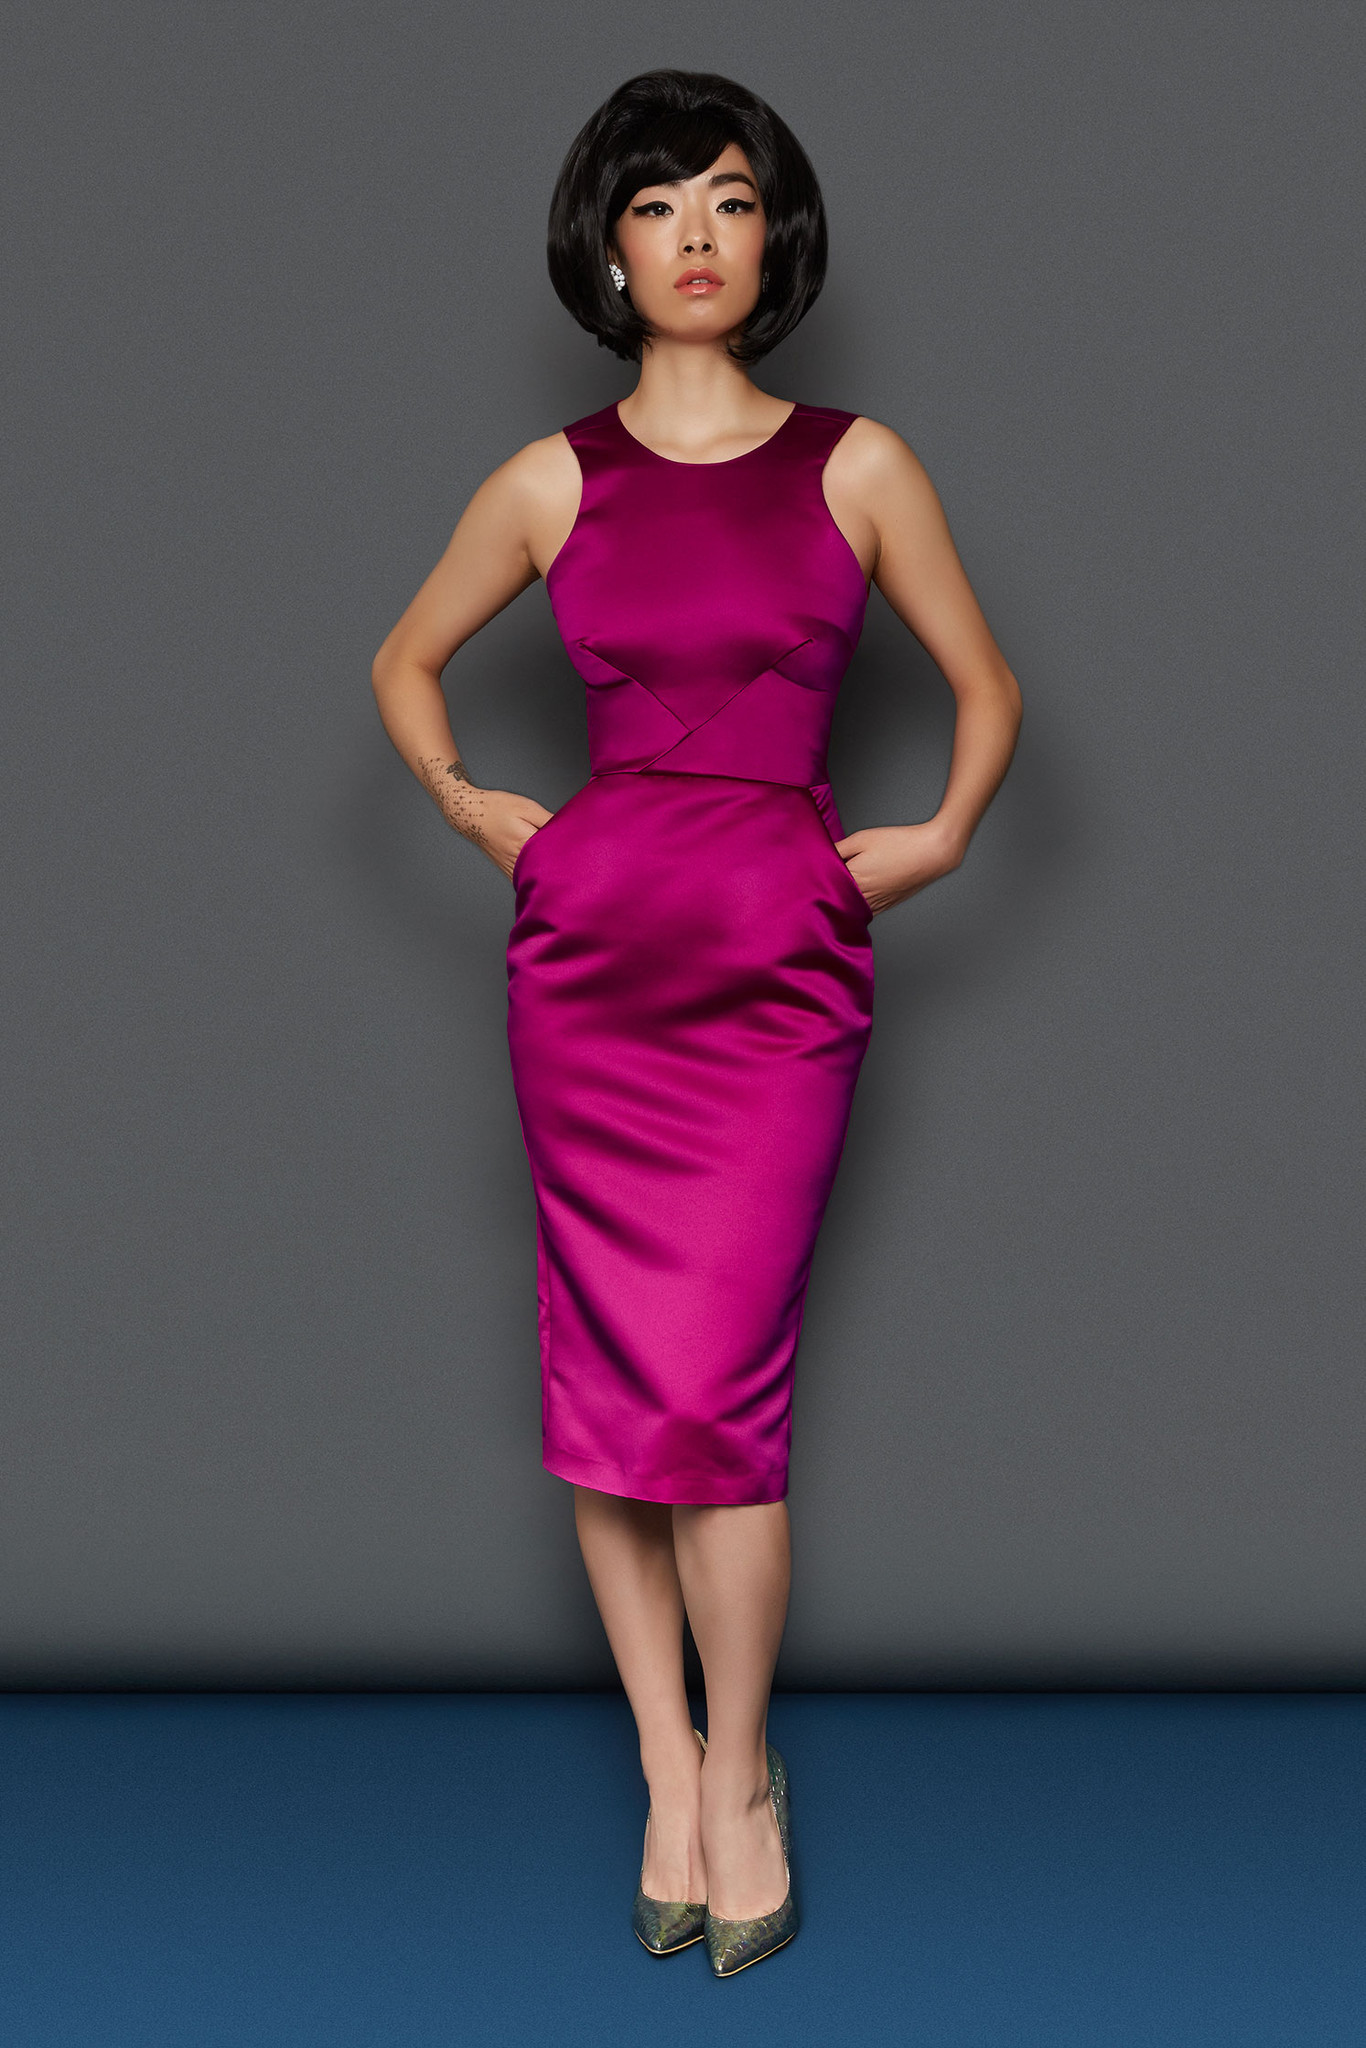 Tiffany_s-dress-pink-mod-shot_3ba7f5a2-592a-46cb-b75e-3c3f659516a6.jpg